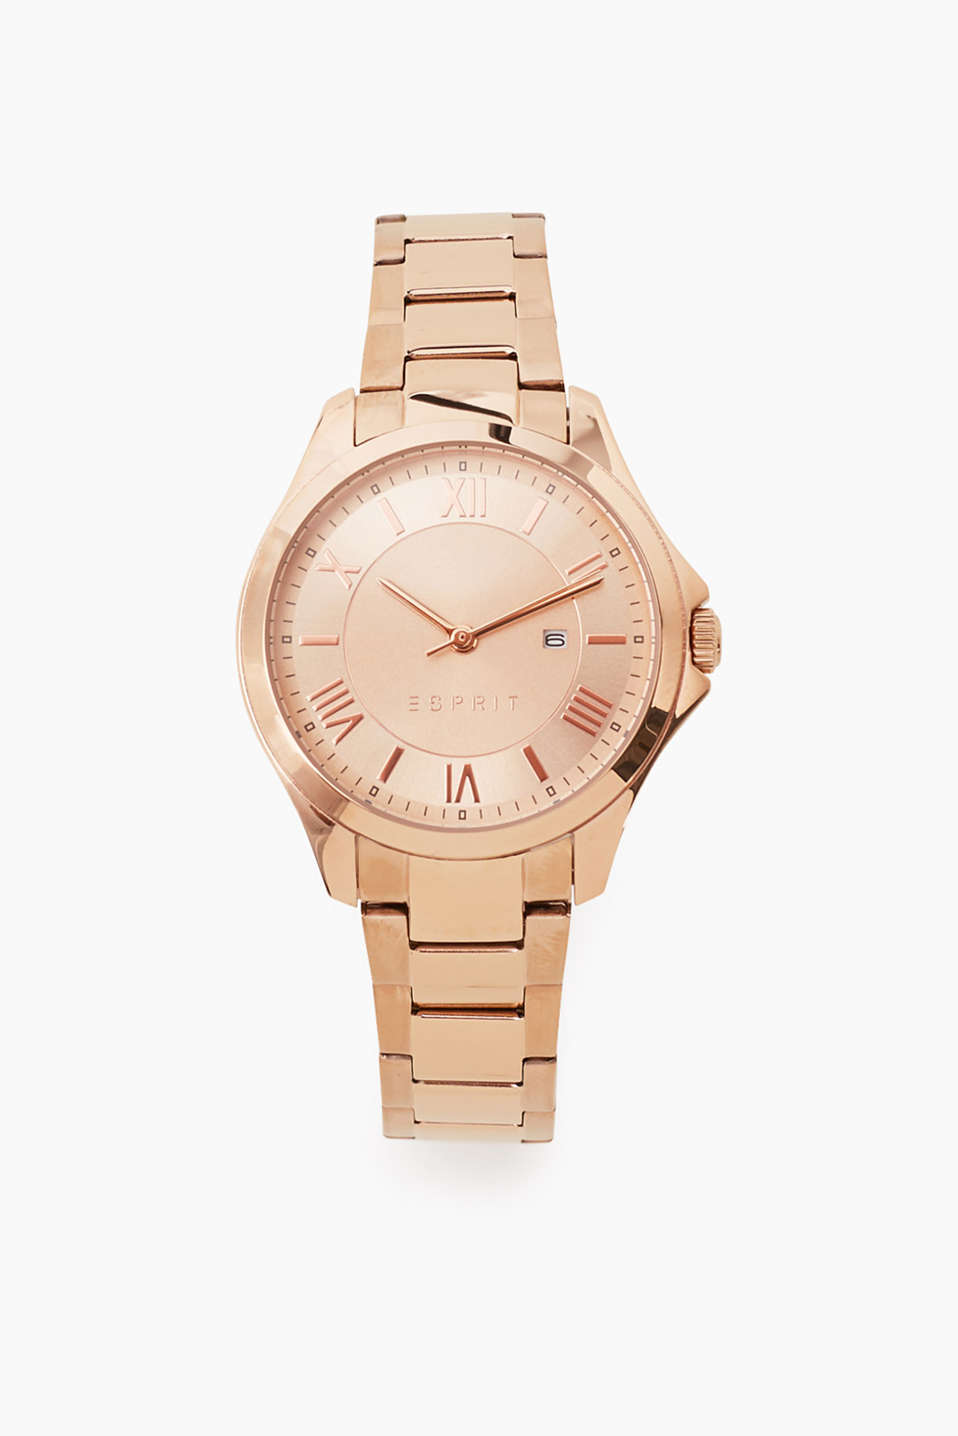 Distinctive Roman numerals: watch with stainless steel casing and strap in a rose gold tone, date, Ø approx. 35 mm